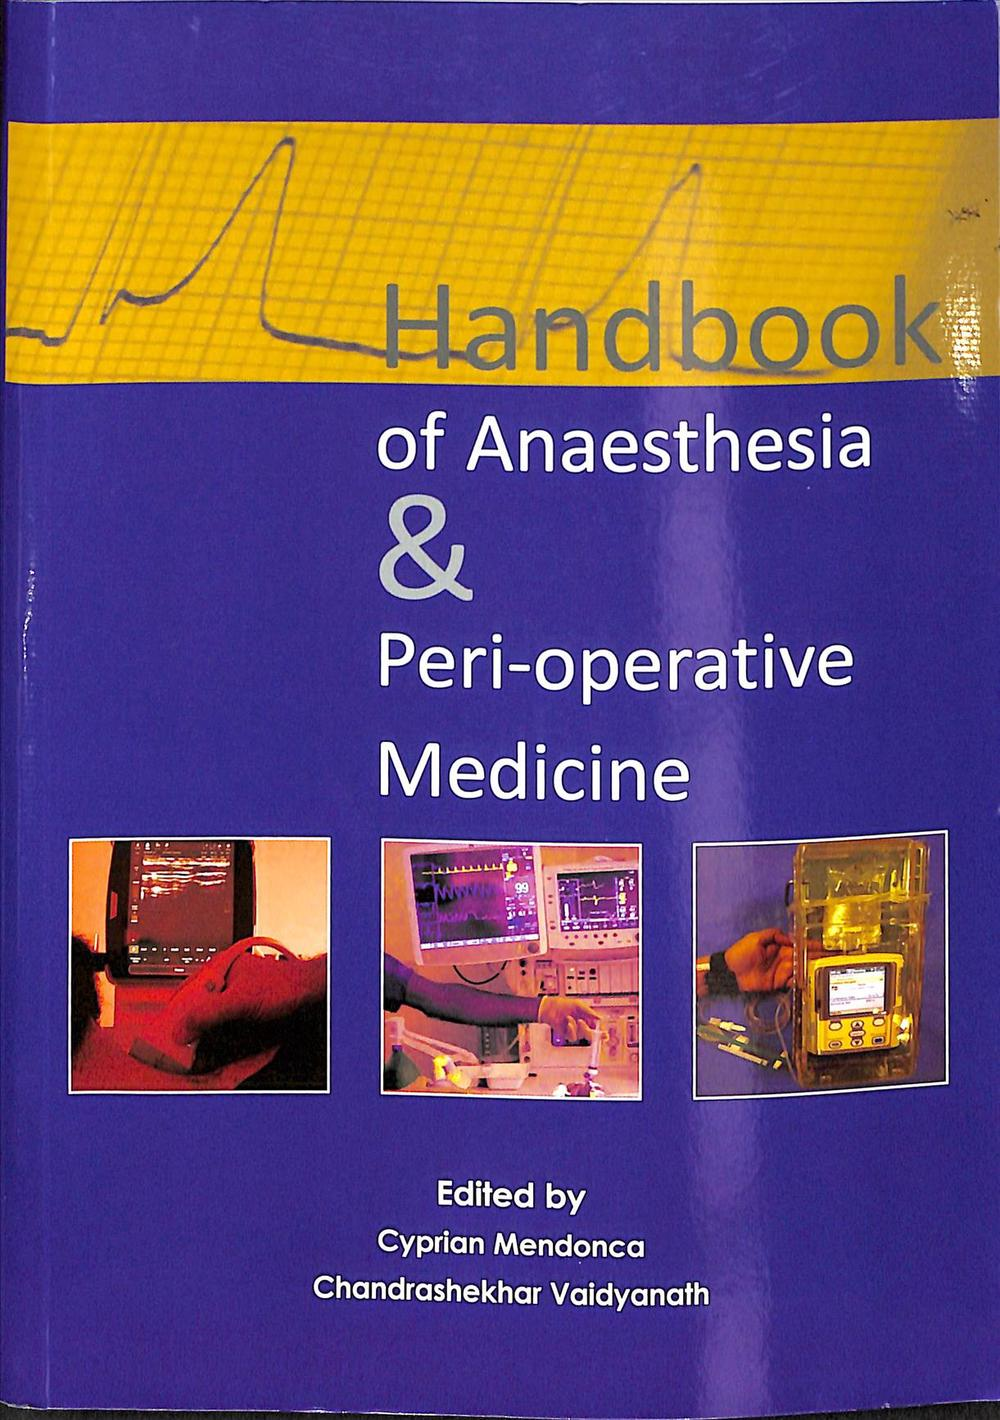 Handbook of Anaesthesia &  Peri-operative Medicine by Cyprian Mendonca, ISBN: 9781910079195